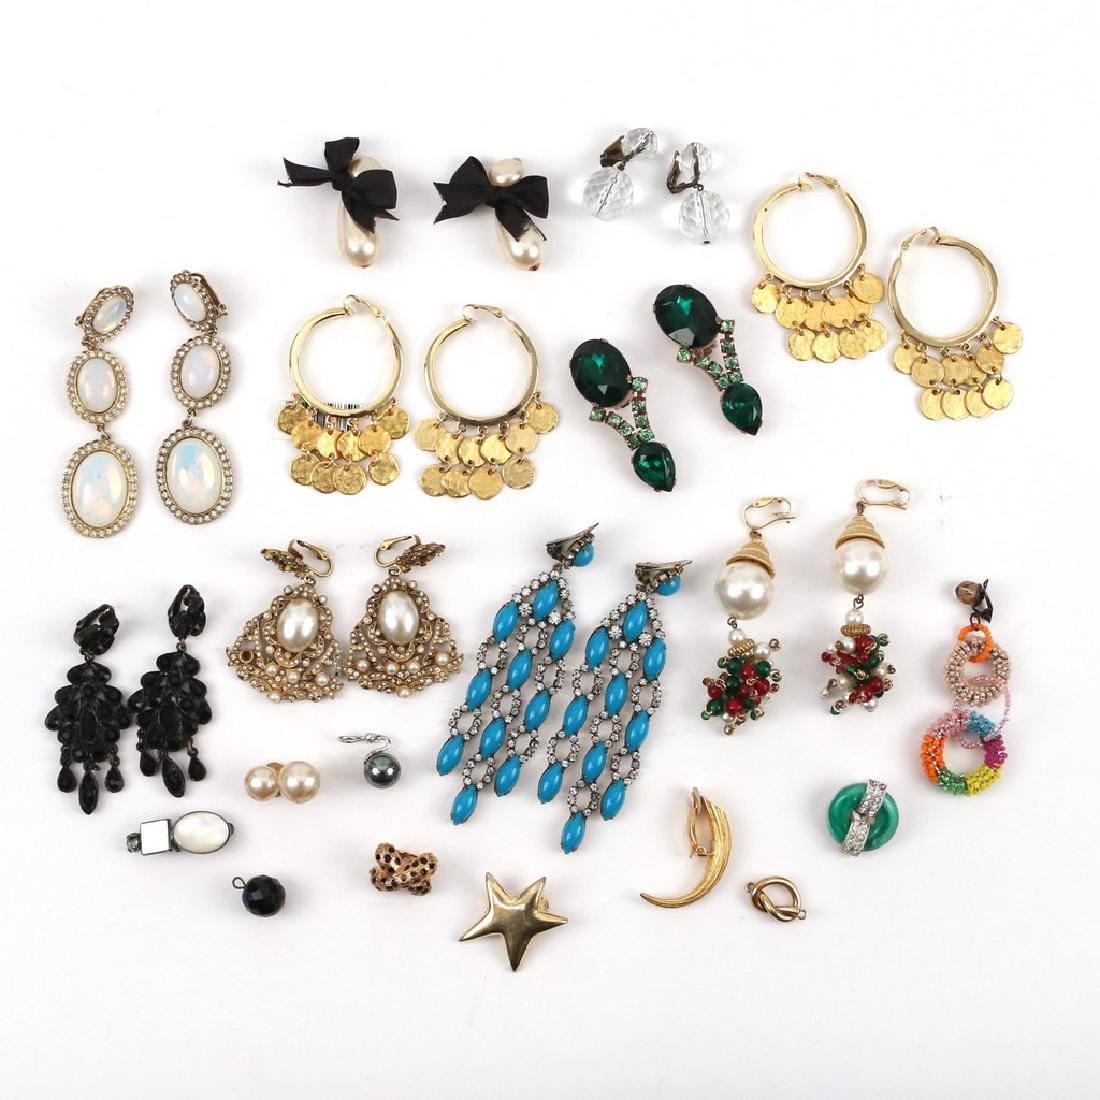 (30pc) MISC. COSTUME DROP & OTHER EARRINGS